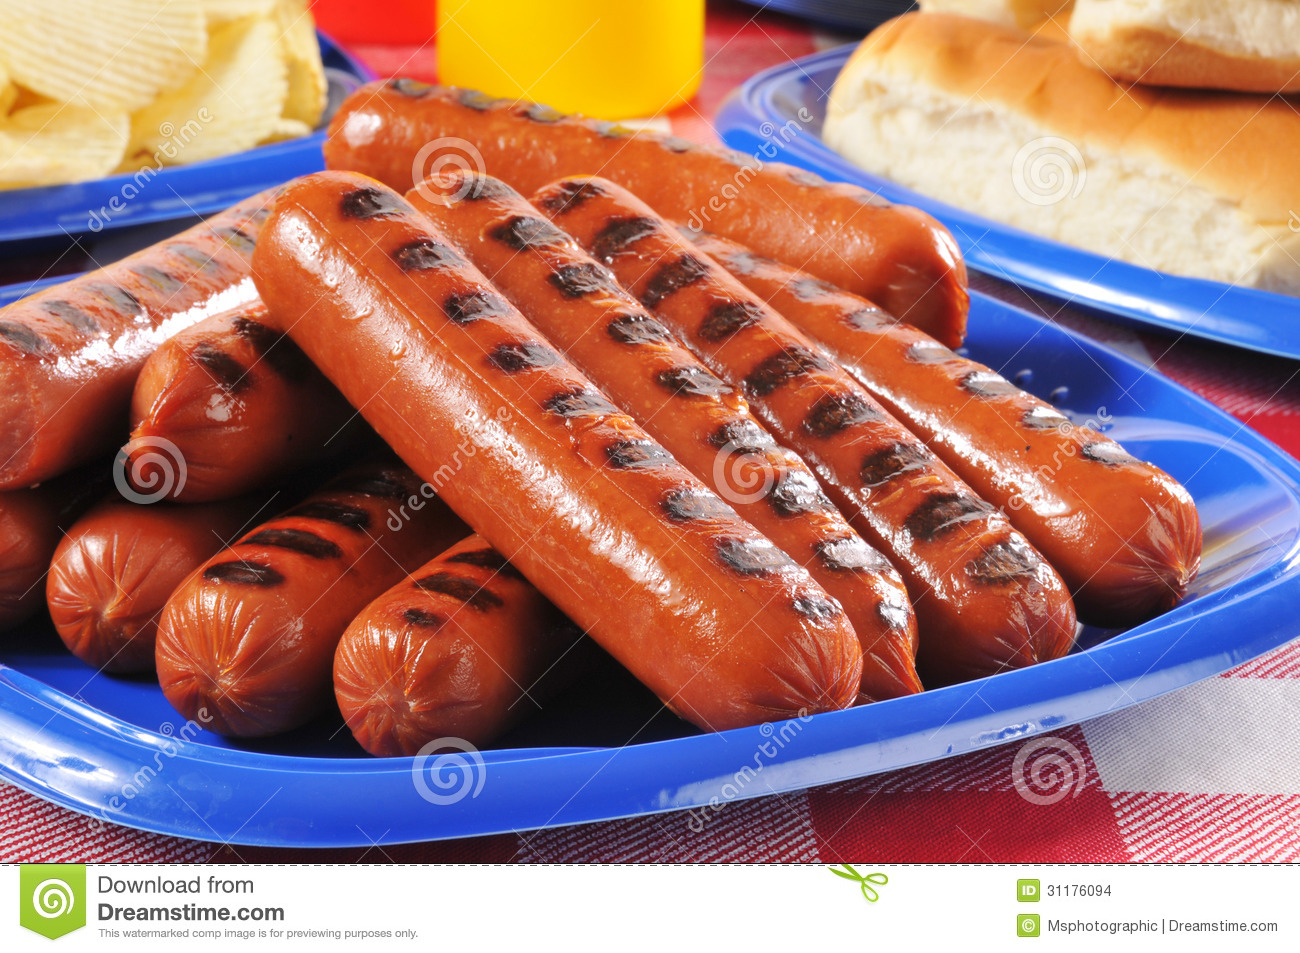 Hot Dogs Processed Meat